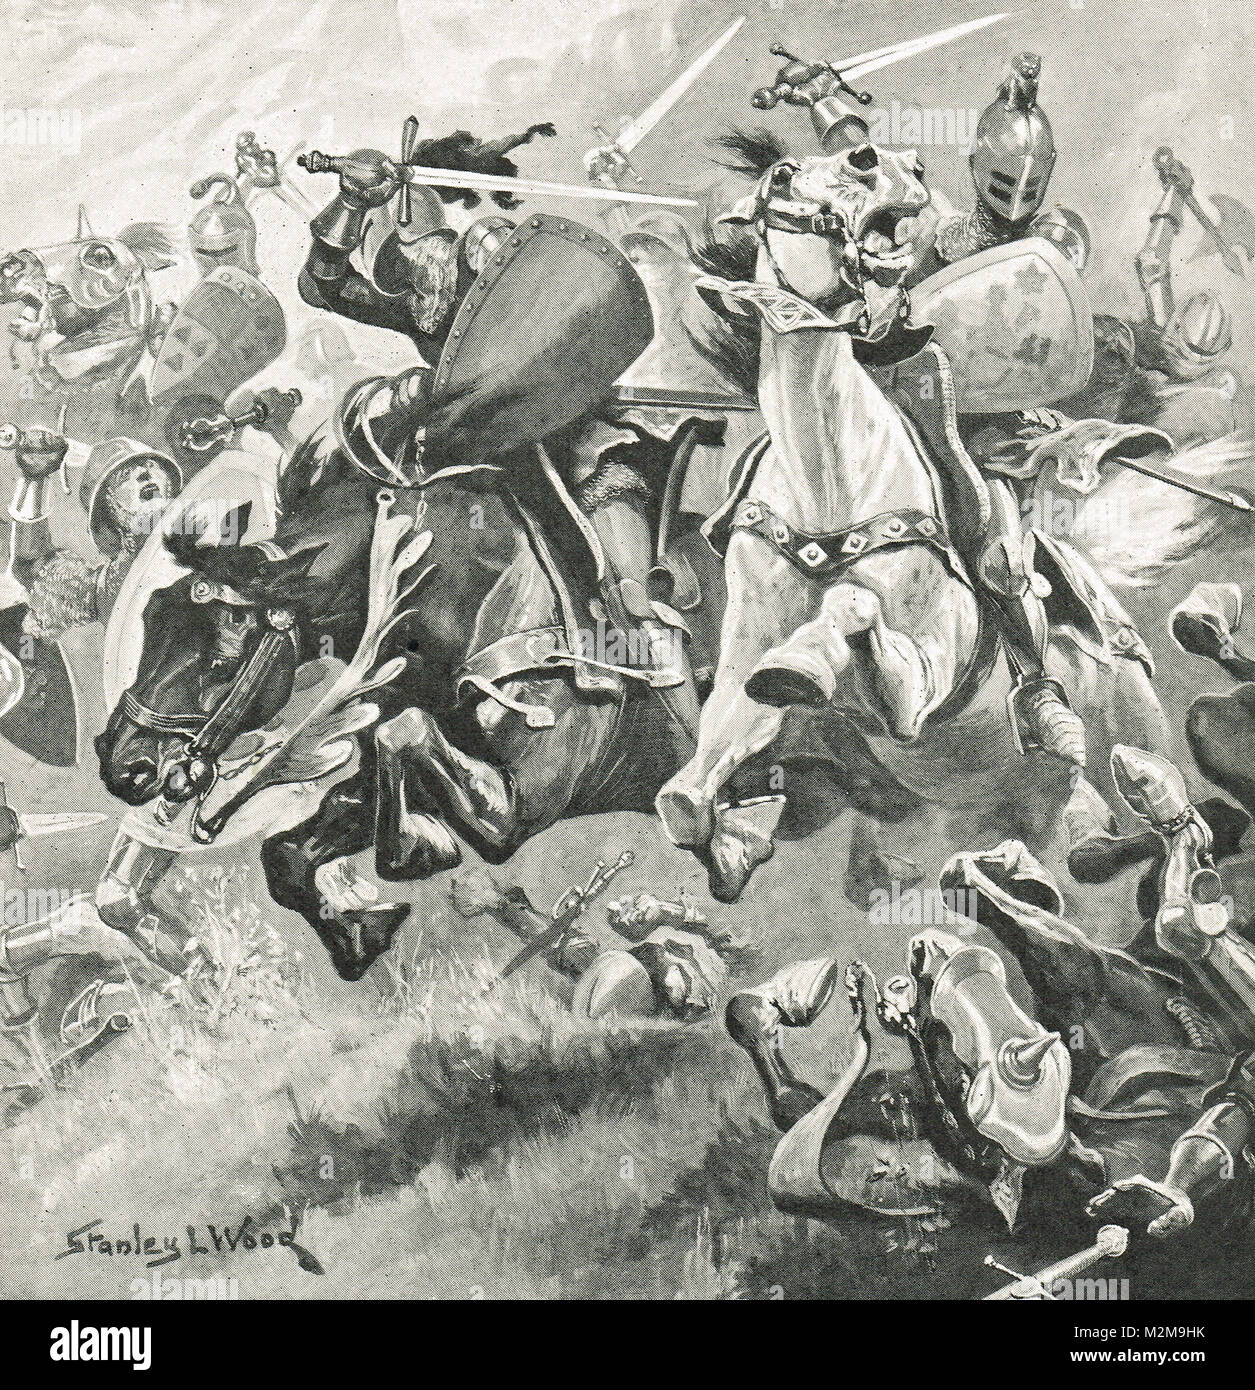 Henry Hotspur Percy and Archibald Douglas riding side by side, leading a charge on the king, Battle of Shrewsbury, - Stock Image